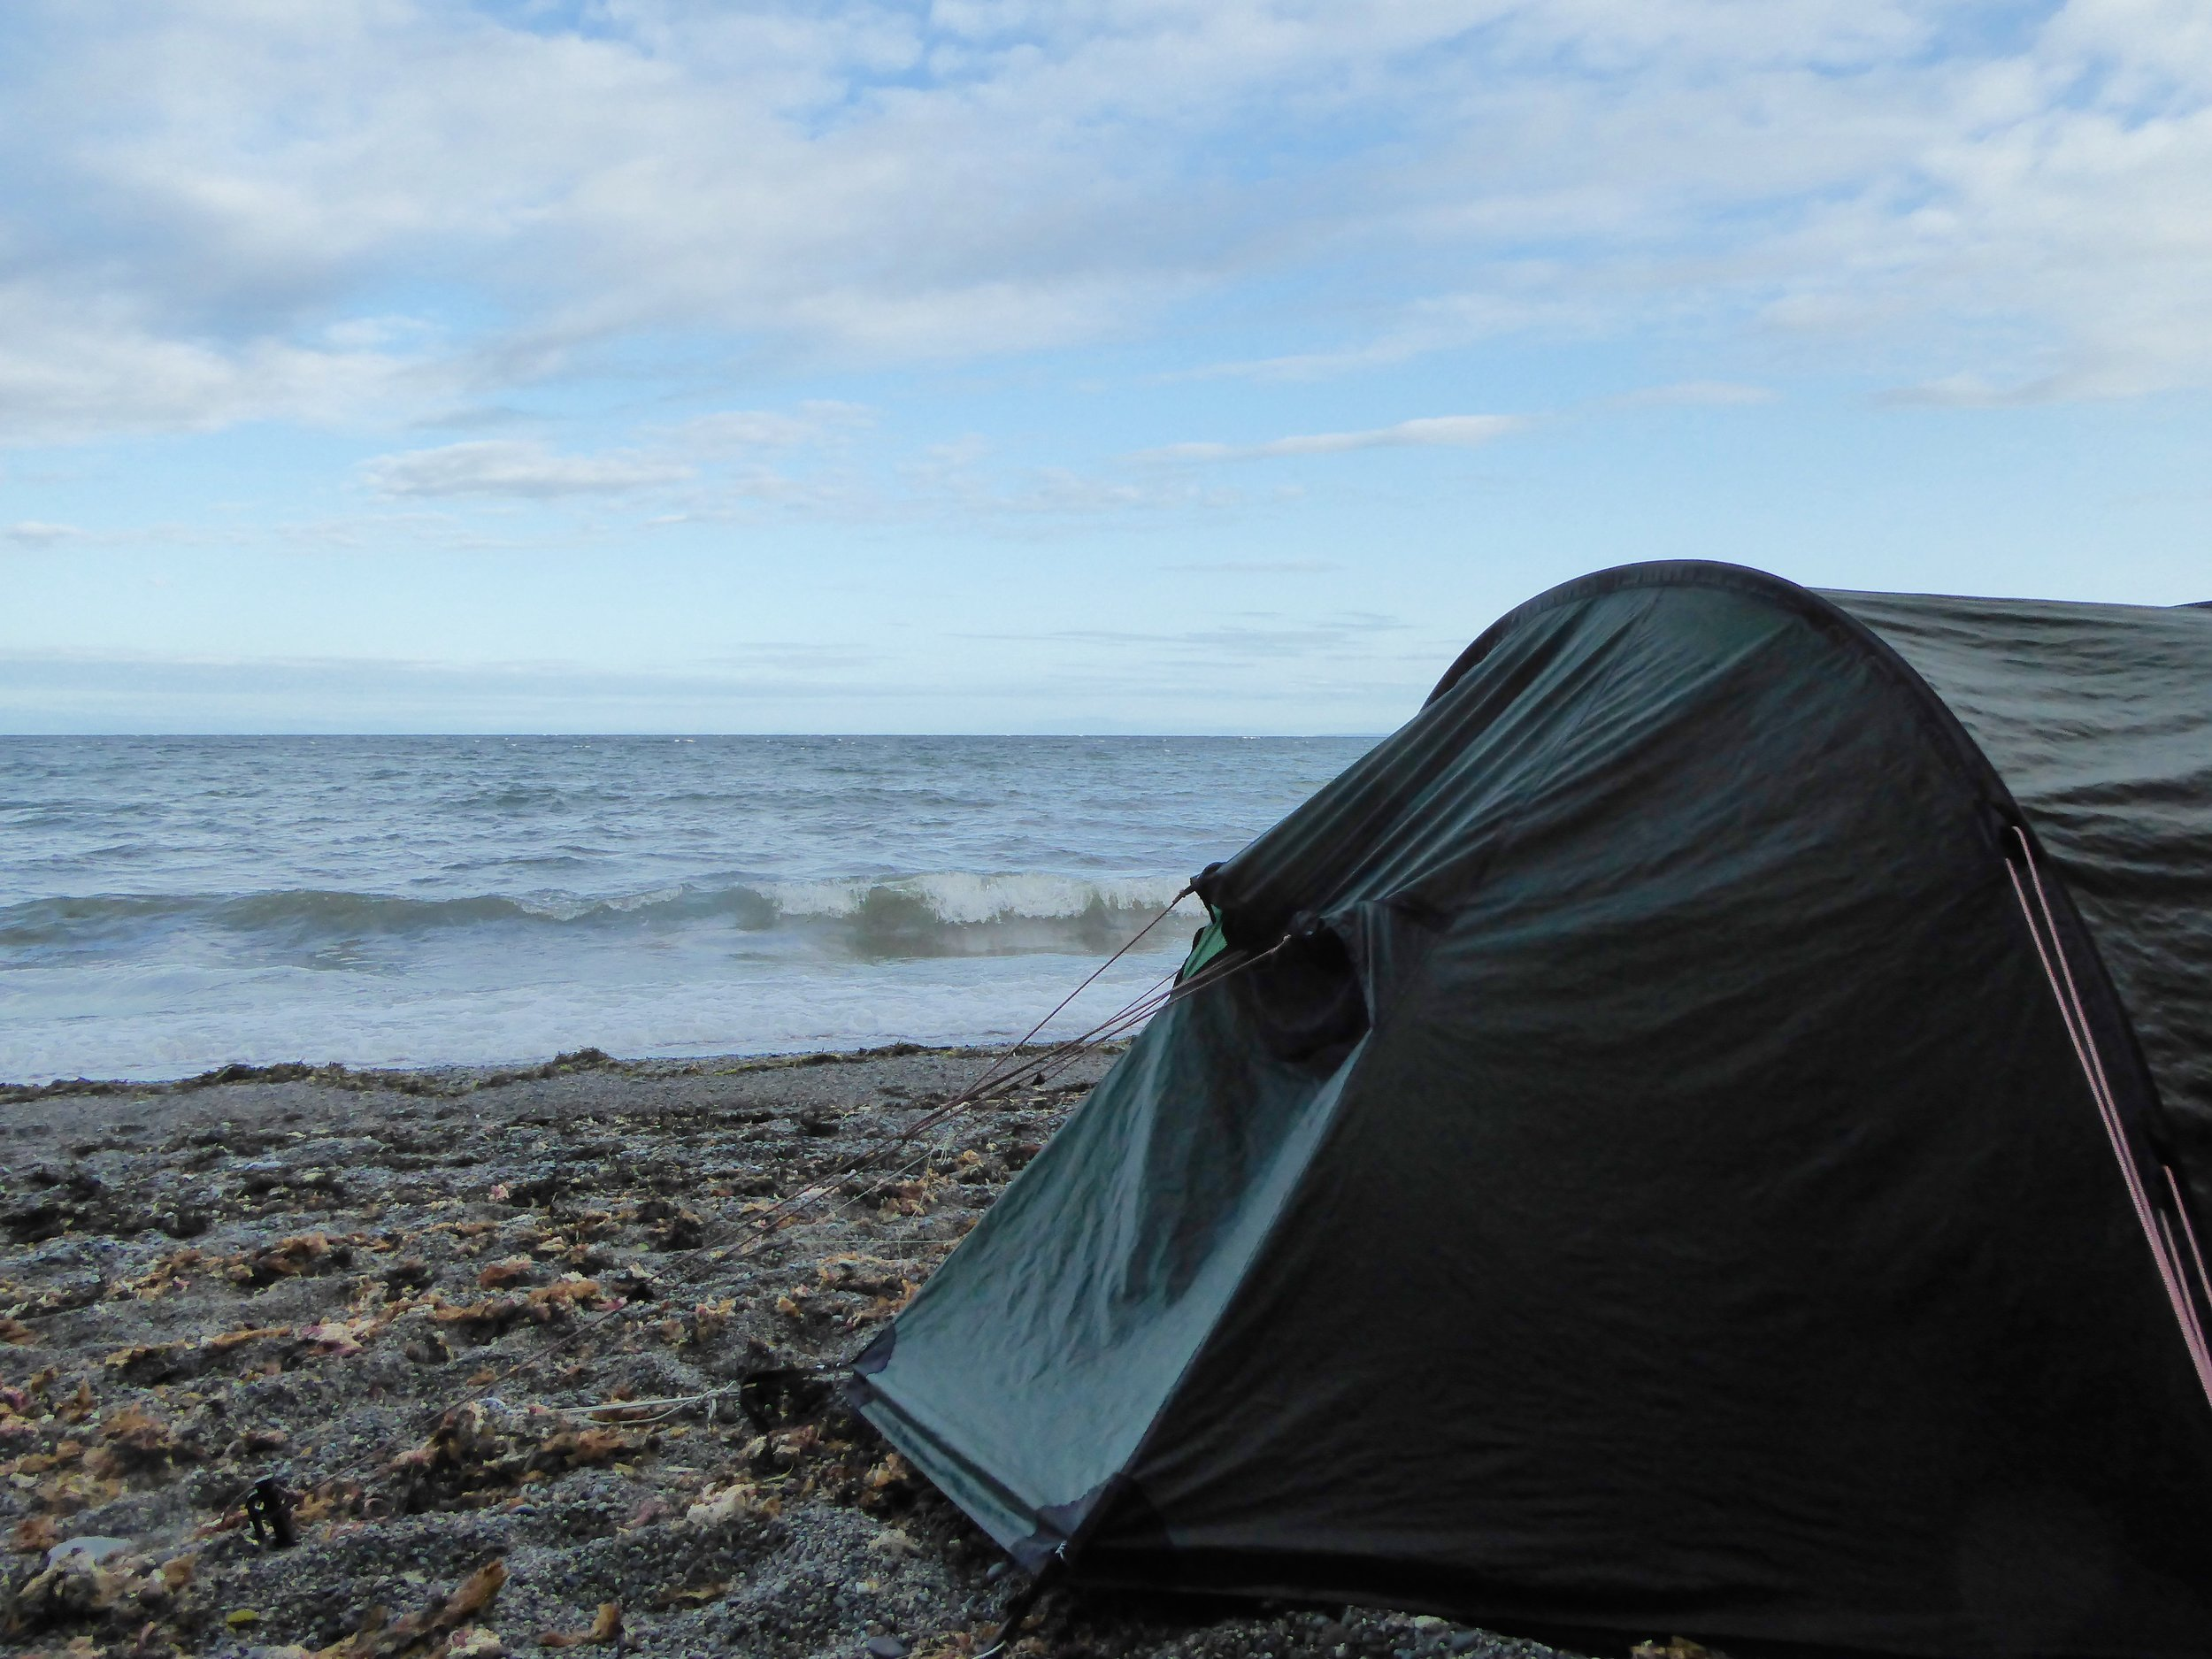 At least the tide did not reach our tent.